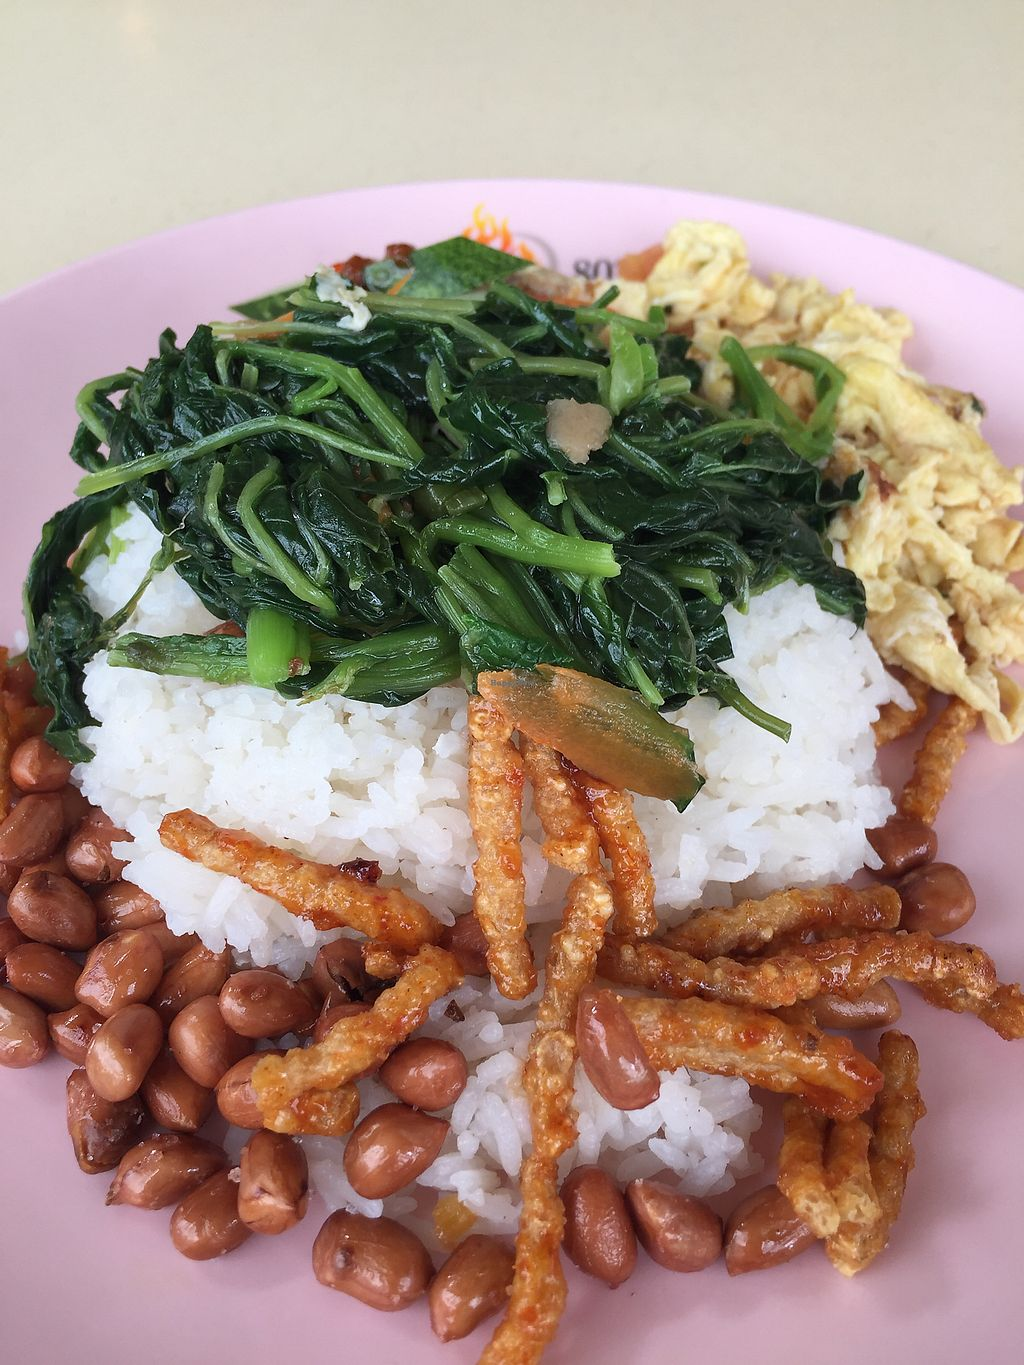 """Photo of CLOSED: Eastern Pure Vegetarian Food  by <a href=""""/members/profile/verywanderful"""">verywanderful</a> <br/>Nasi Lemak. Coconut rice with dishes.  <br/> August 20, 2017  - <a href='/contact/abuse/image/98465/294766'>Report</a>"""